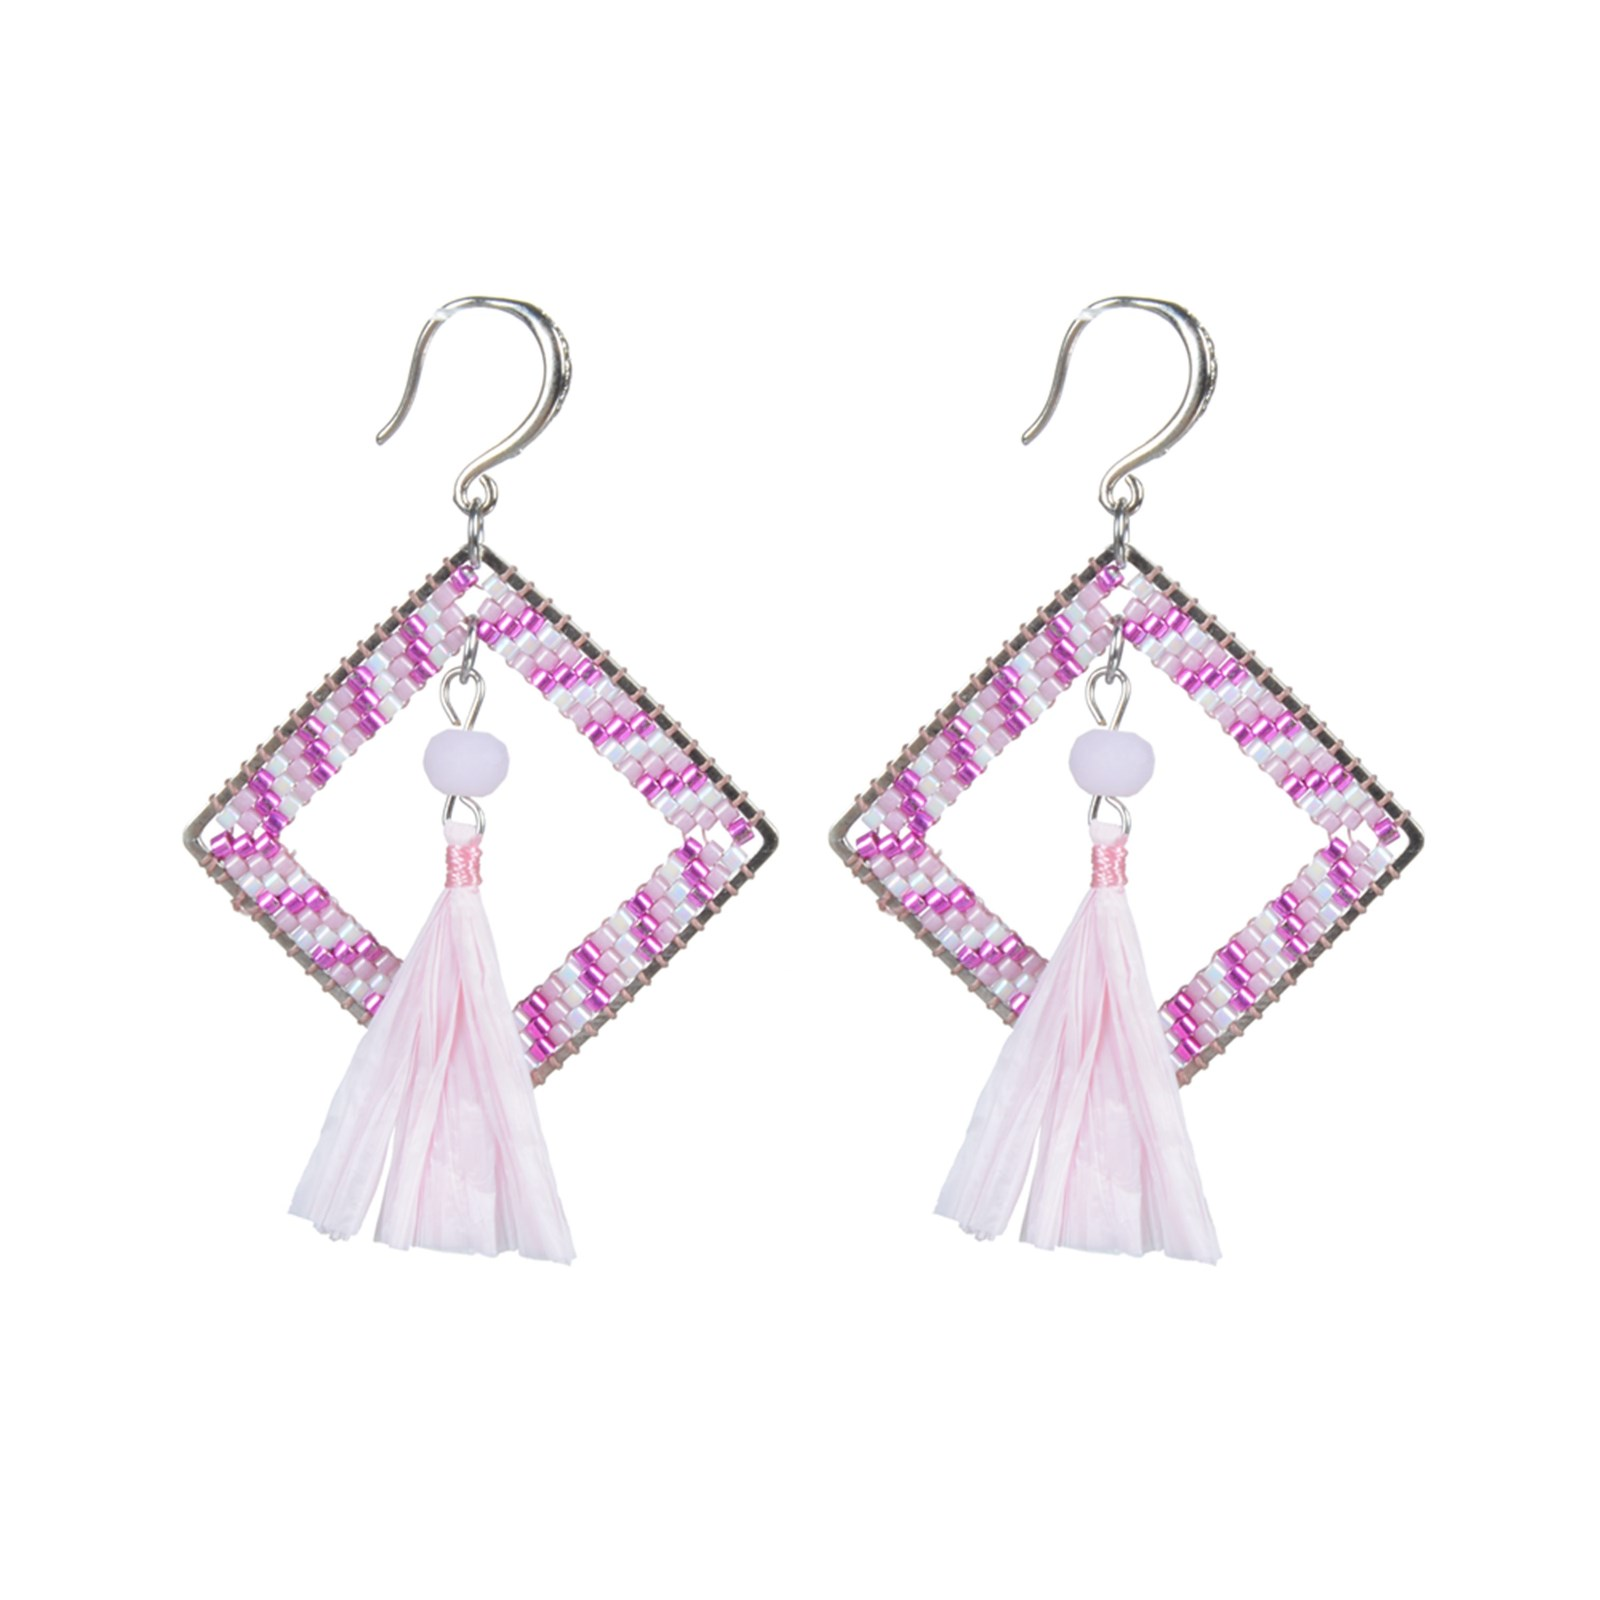 trustworthy beaded tassel jewelry tassel wholesale for e-commerce-7